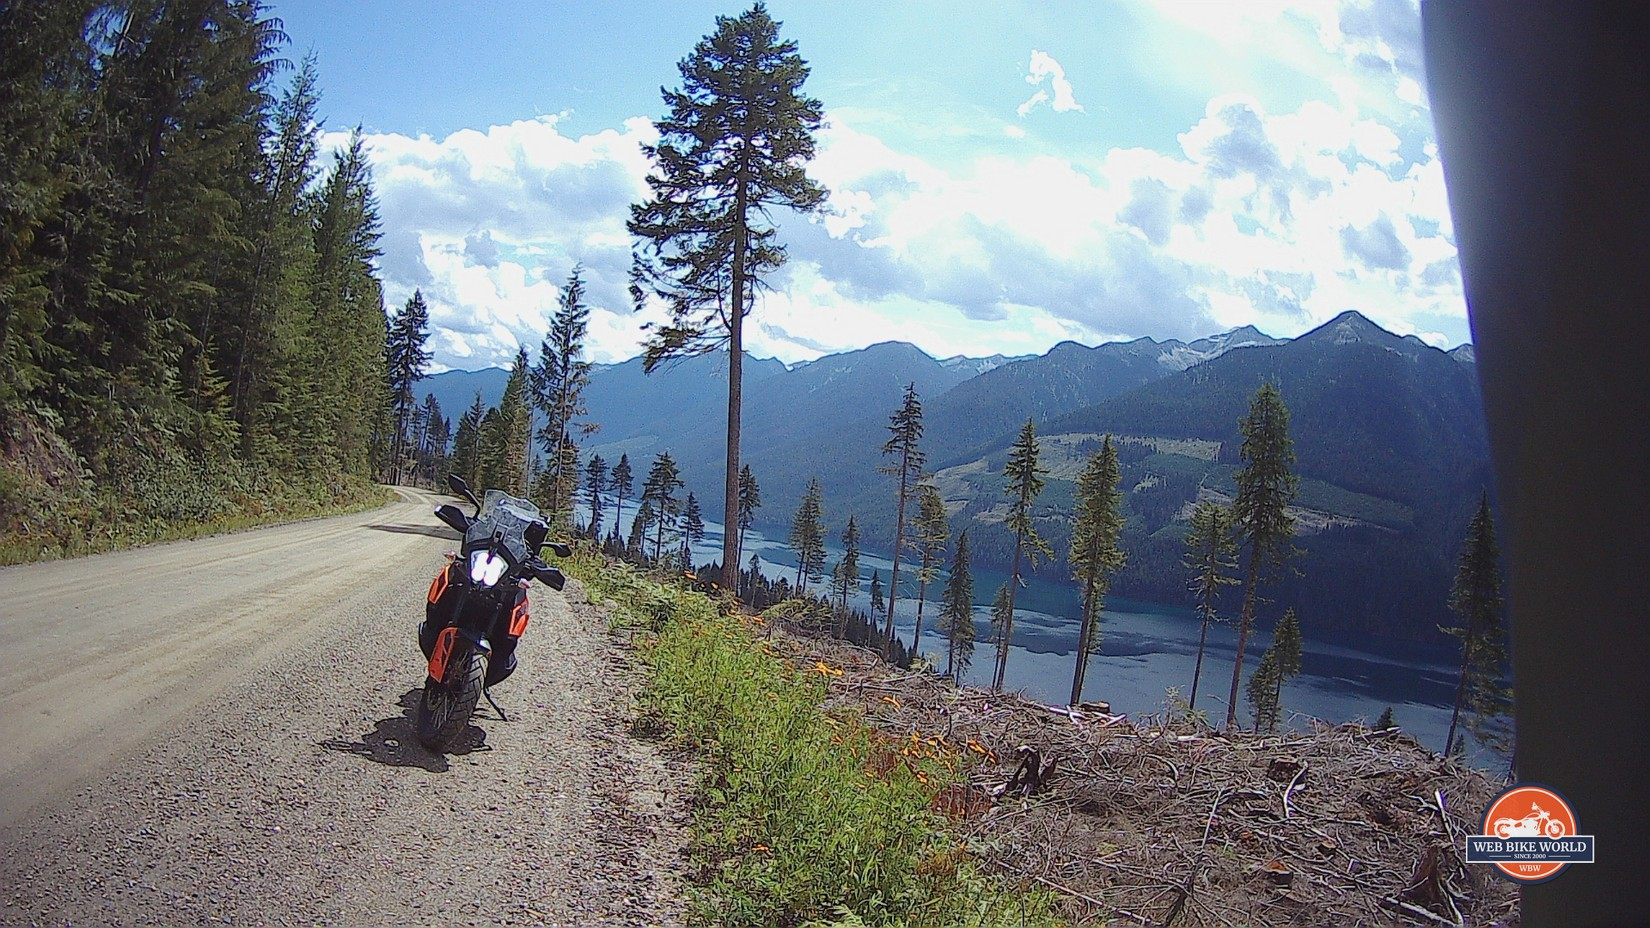 Shots of a KTM 790 Adventure by a lake in British Columbia.